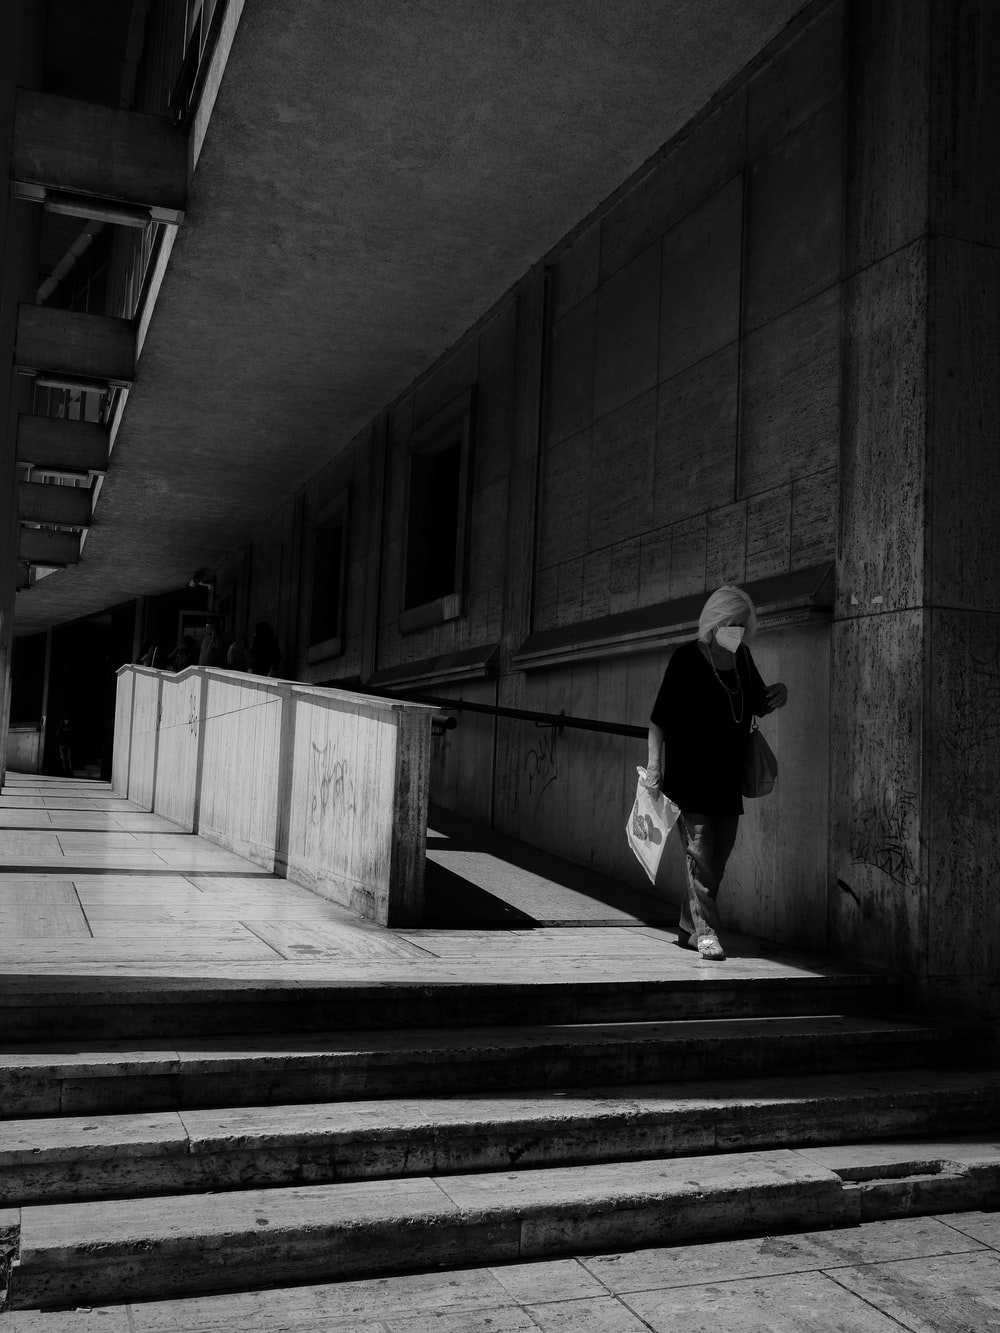 grayscale photo of woman in black long sleeve shirt and pants walking on hallway